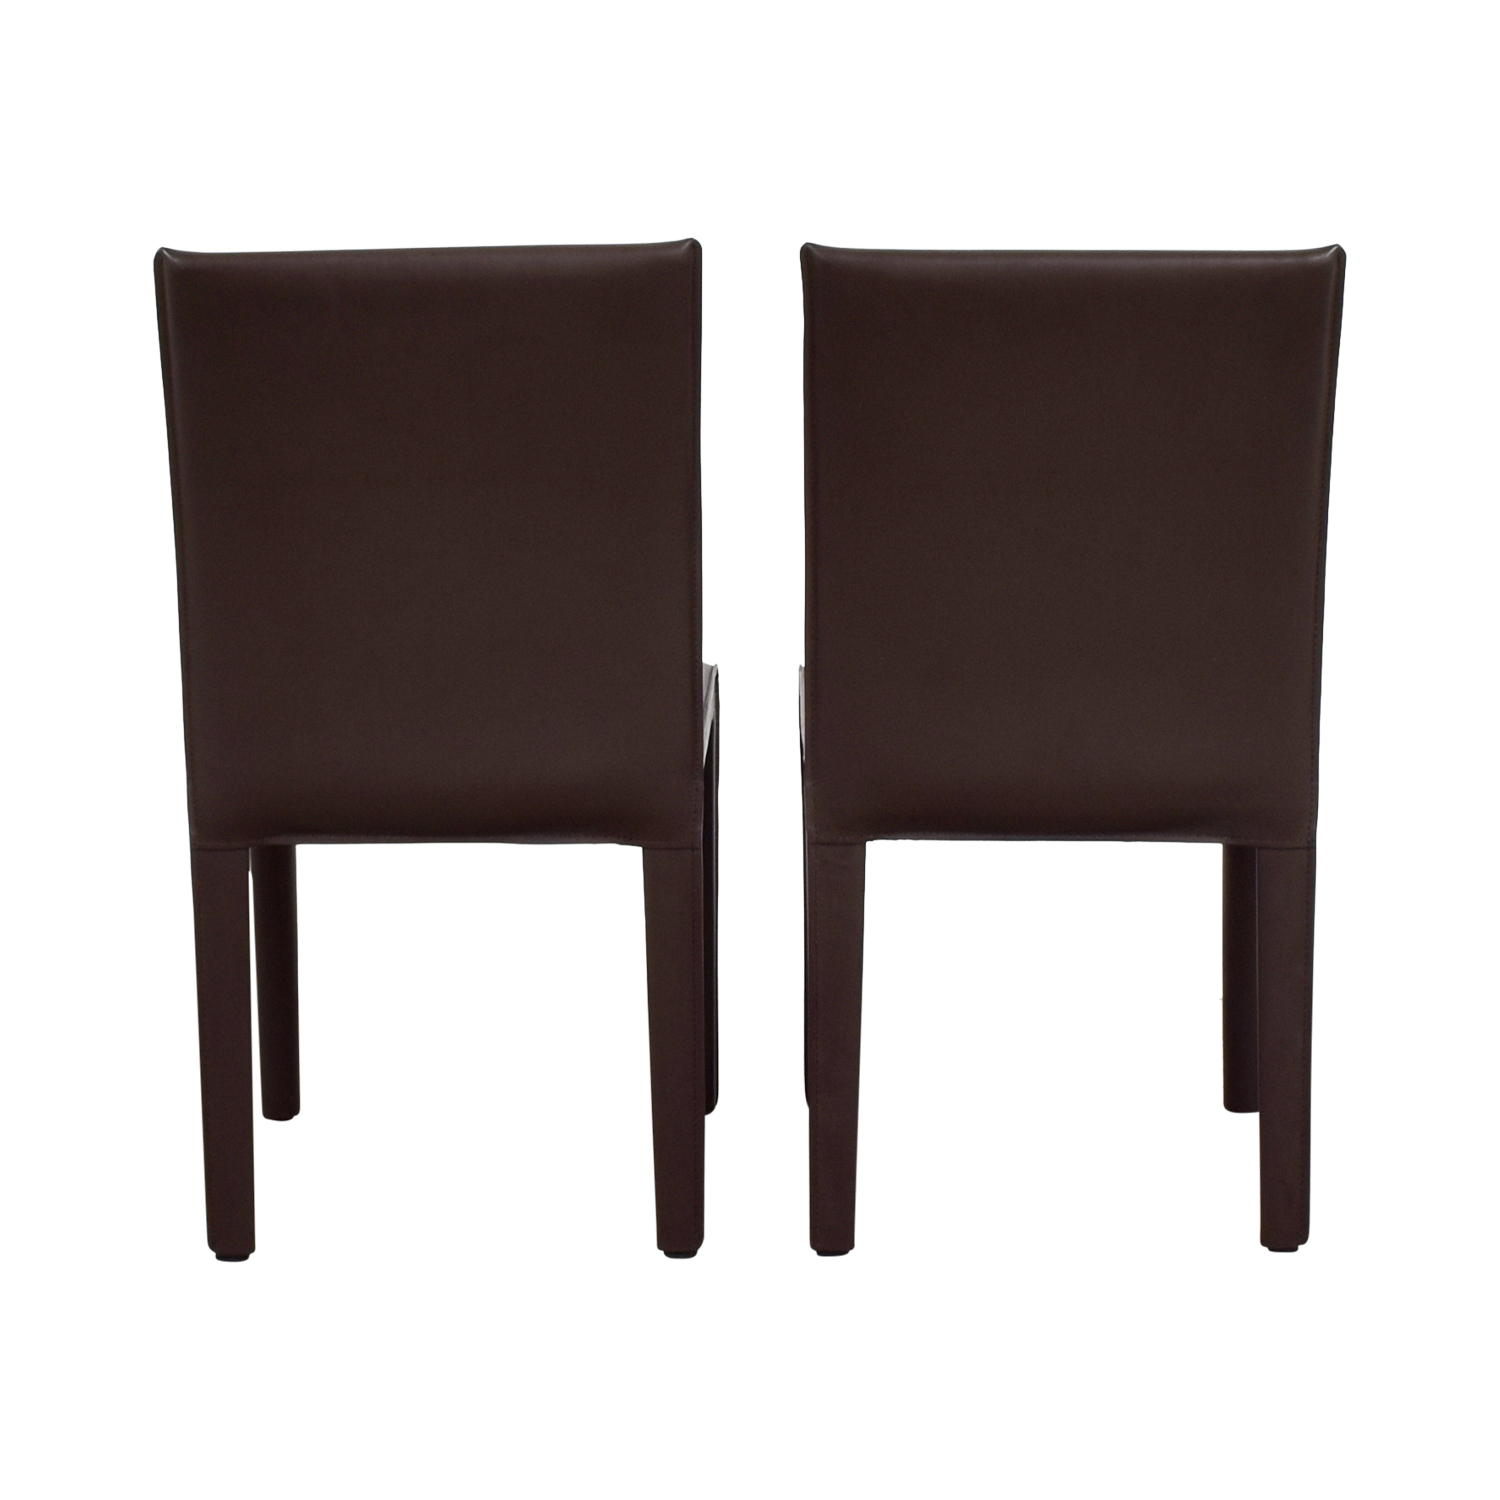 Maria Yee Maria Yee Mondo Brown Leather Dining Chairs used